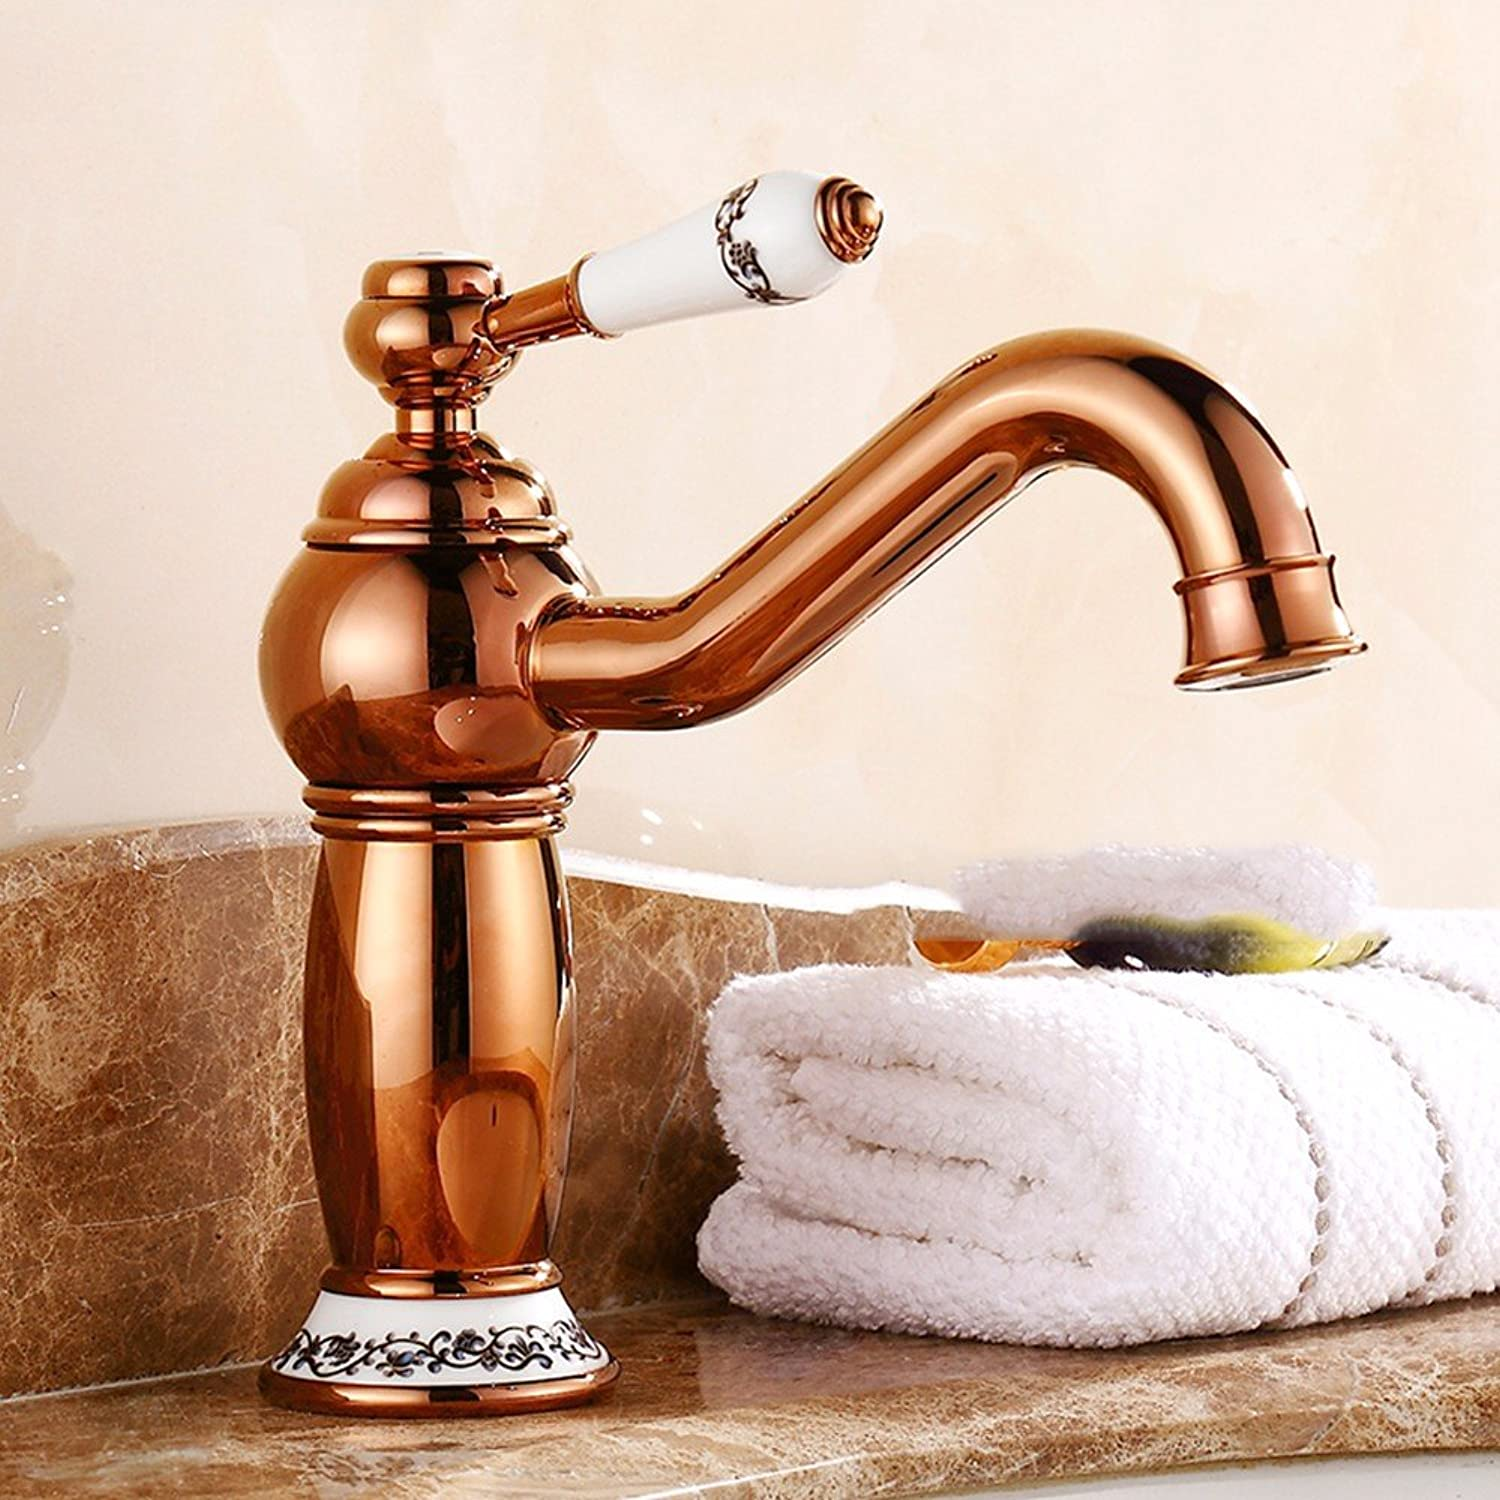 Hlluya Professional Sink Mixer Tap Kitchen Faucet Ceramic, hot and cold, the basin, plus high and sink Faucet 11